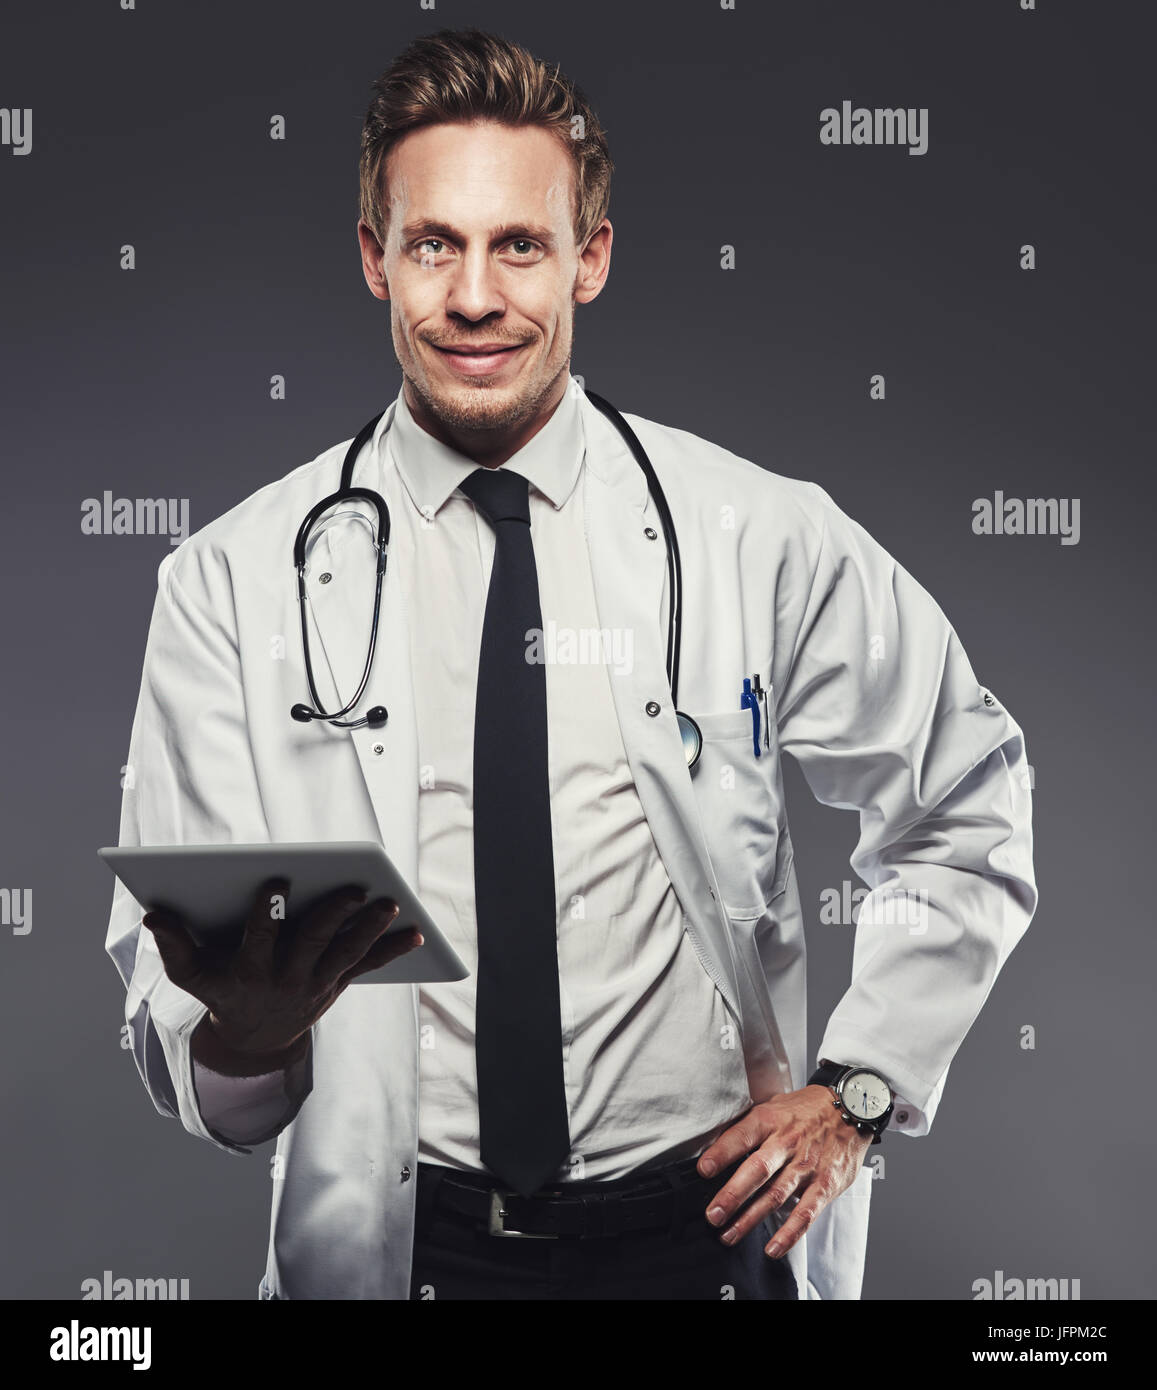 Smiling young doctor wearing a labcoat and holding a digital tablet standing alone in a studio against a grey background Stock Photo